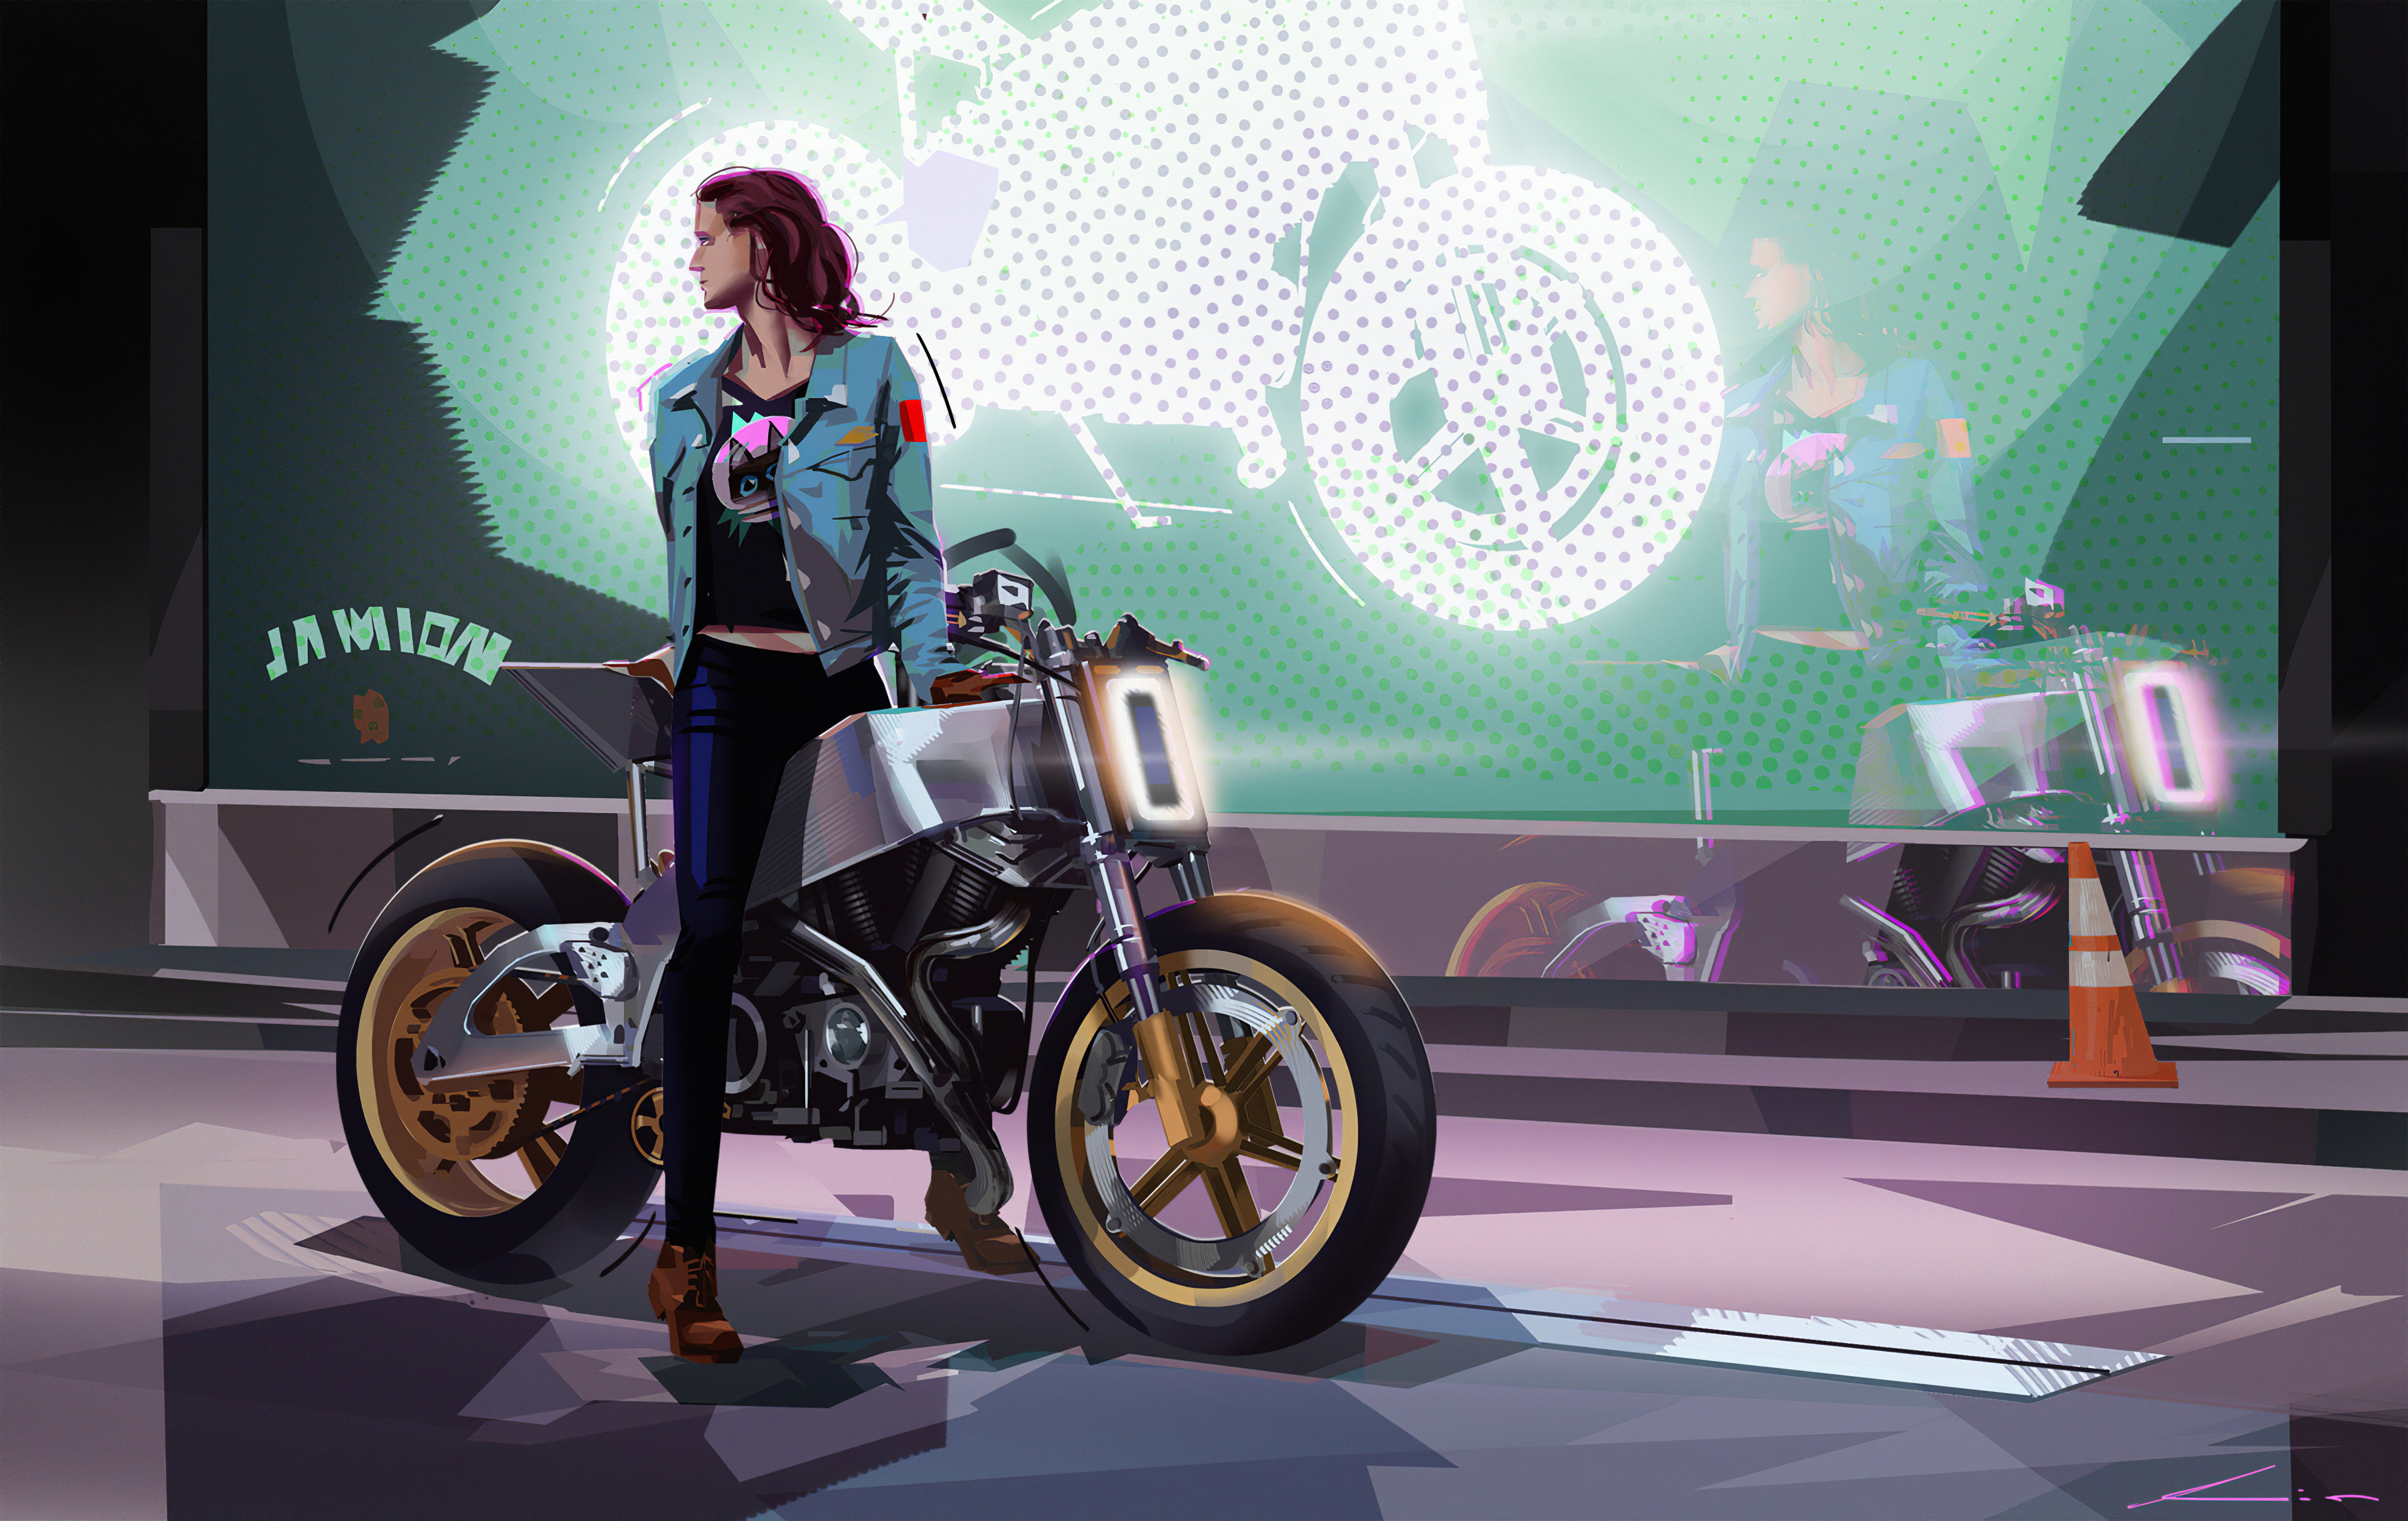 Bike Rider Girl 4k Hd Artist 4k Wallpapers Images Backgrounds Photos And Pictures